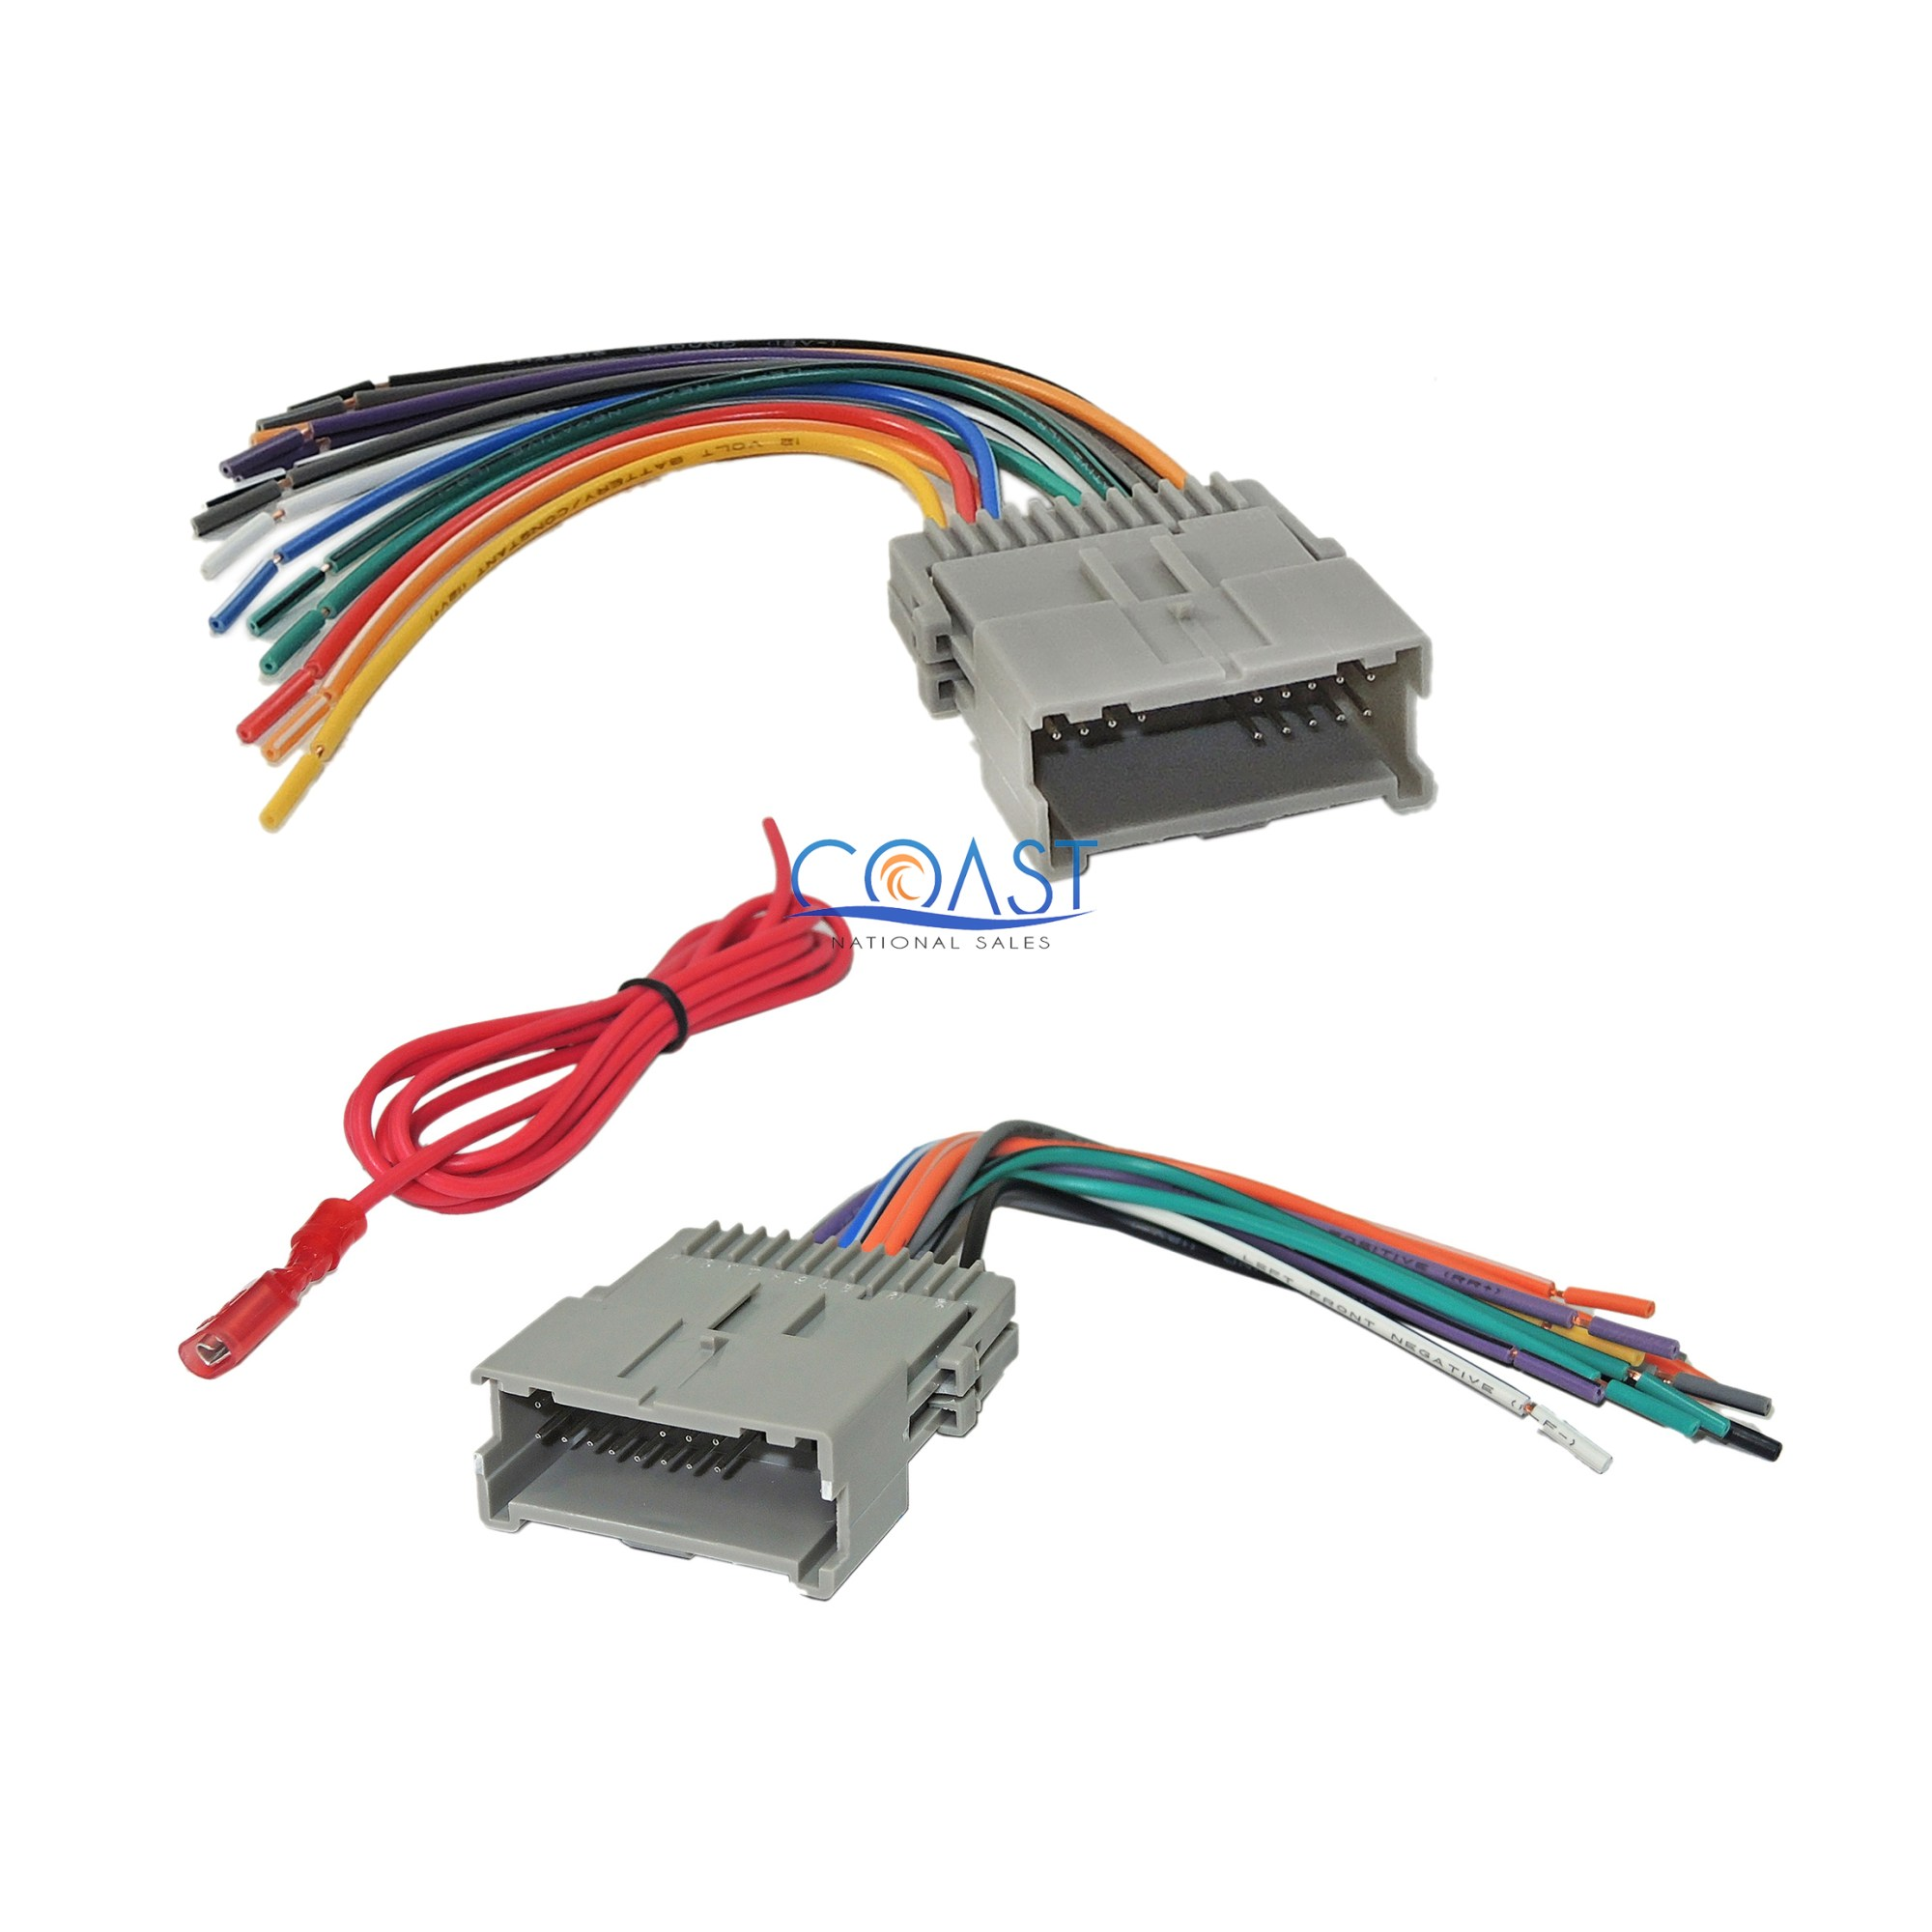 hight resolution of details about gm car radio stereo wire wiring harness combo for 1992 up chevy gmc pontiac